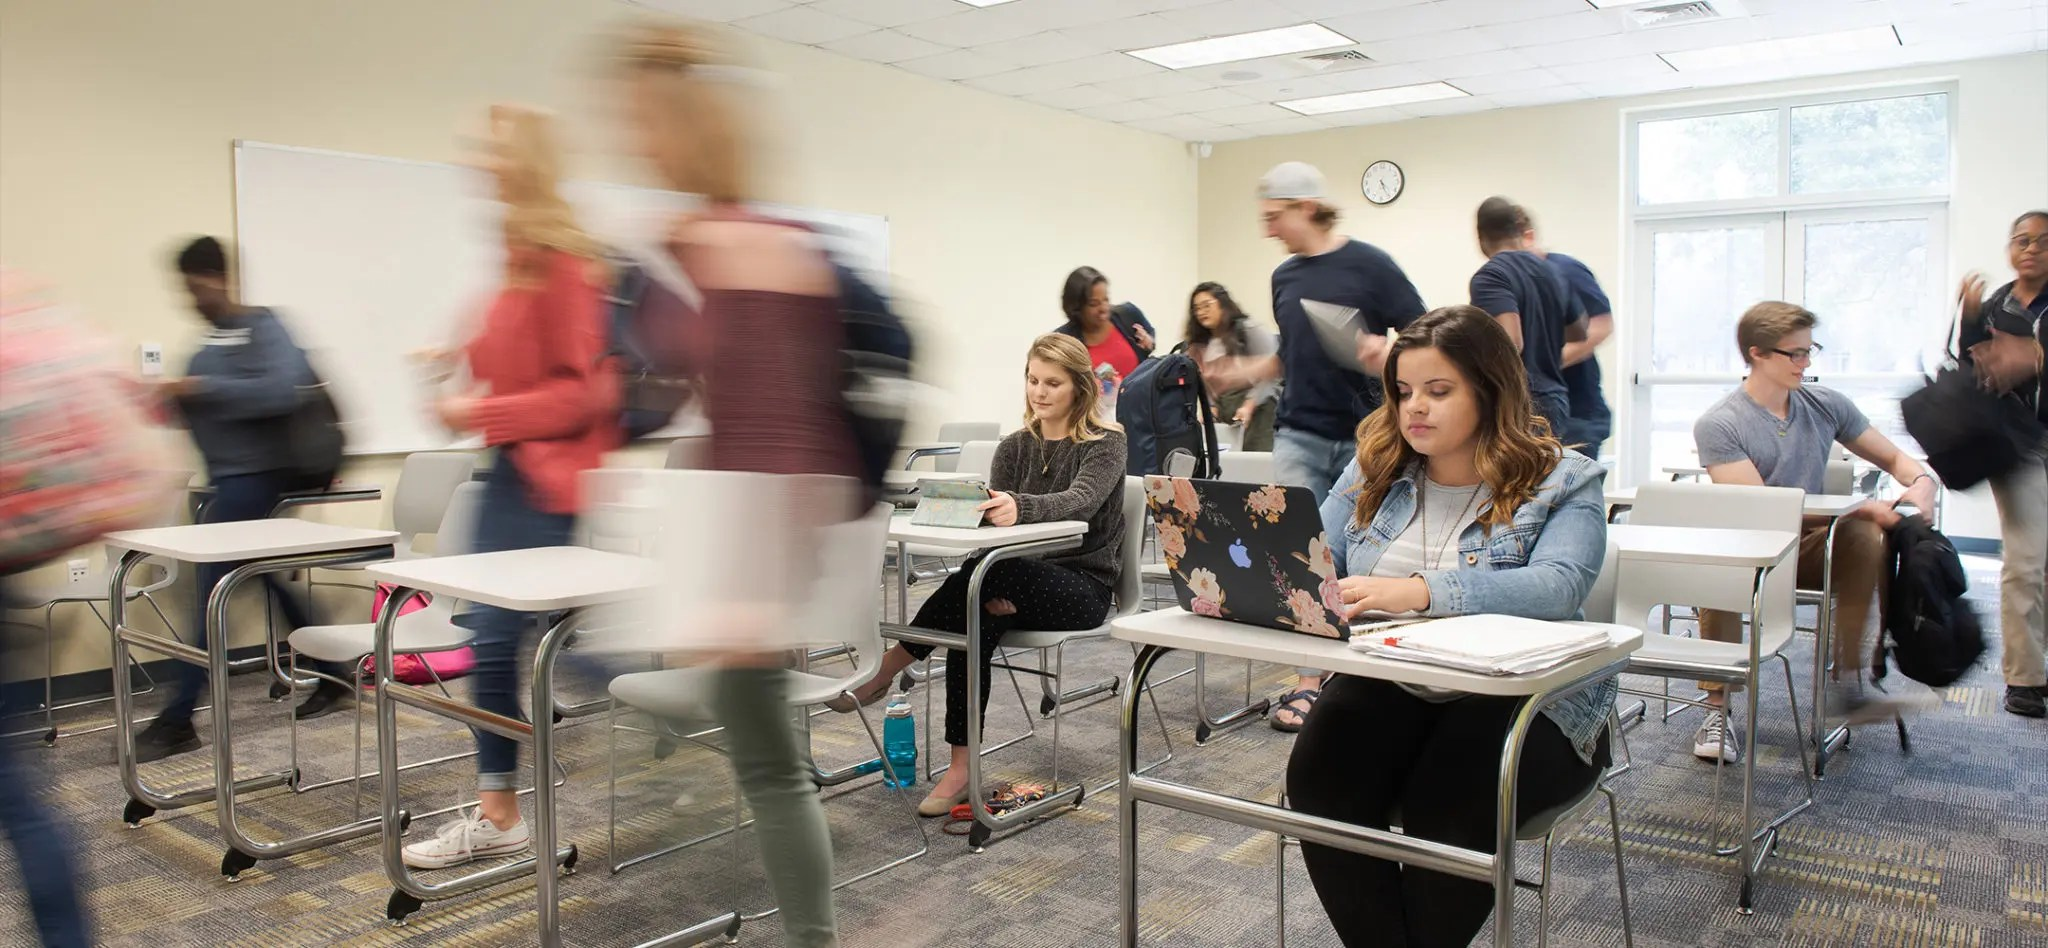 Students in classroom with the effect of most students in motion leaving class.